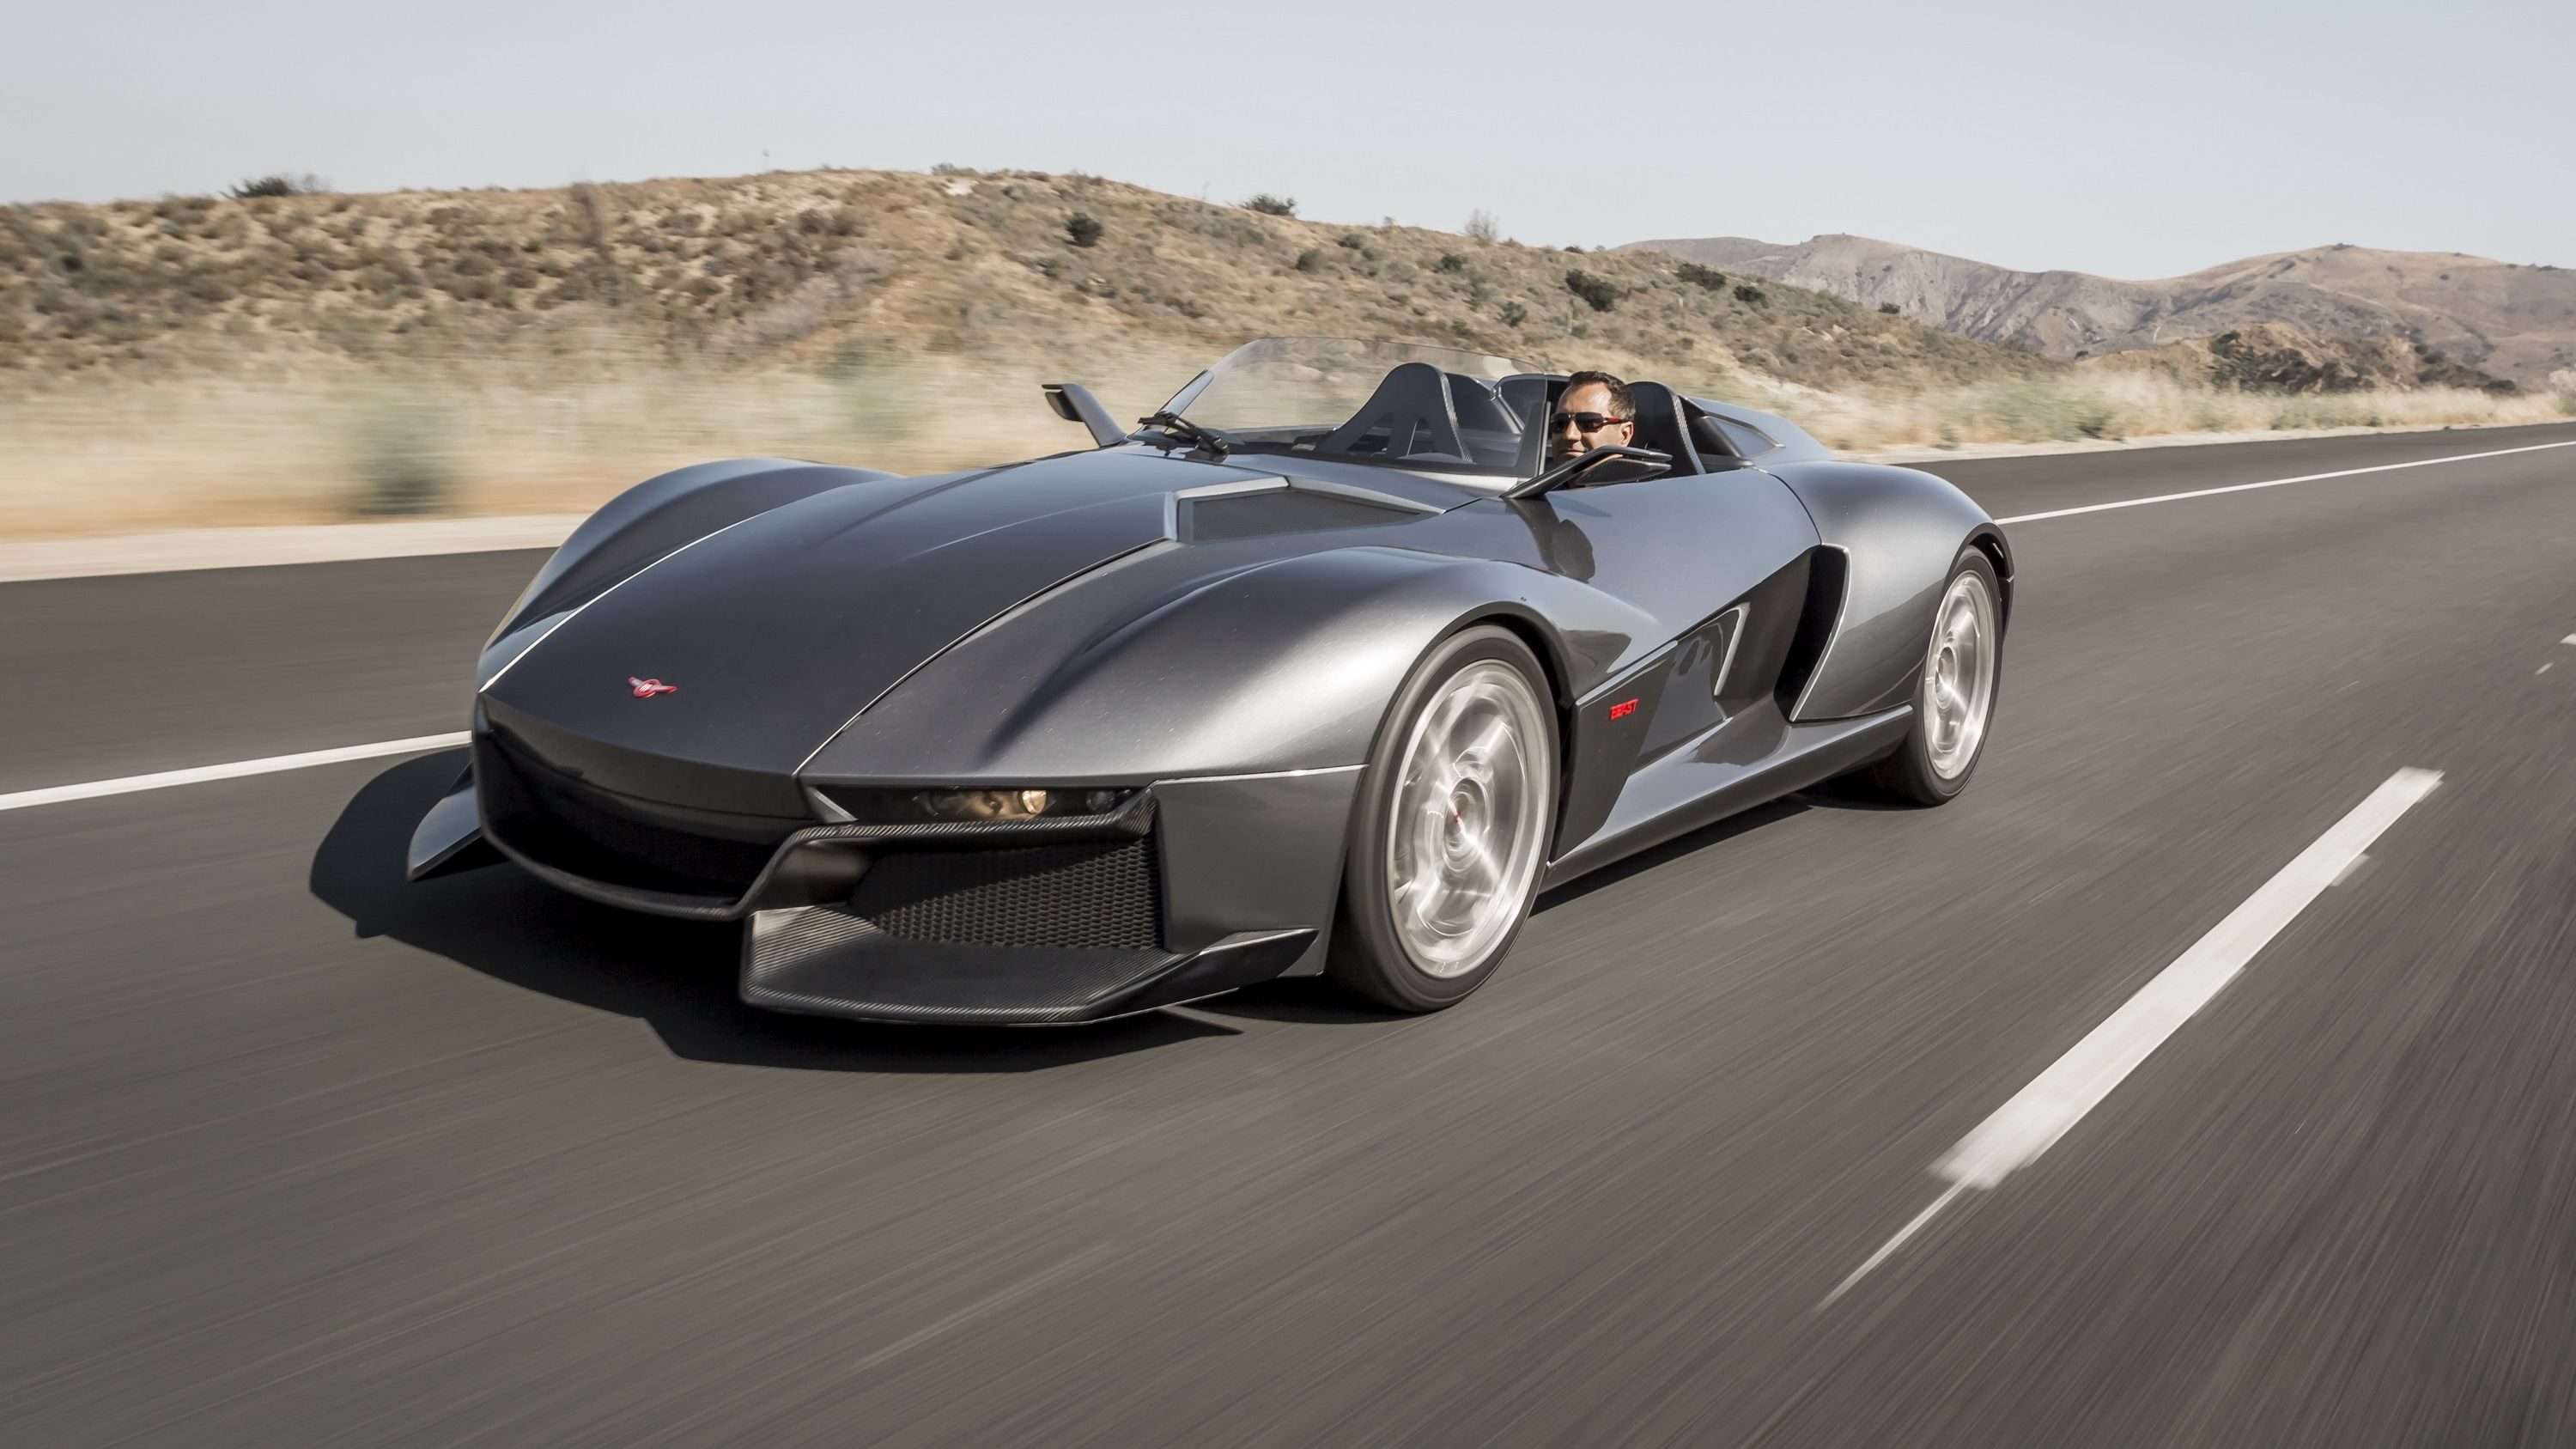 Rezvani Beast 500 Hp California Sports Car Super Cars Fast